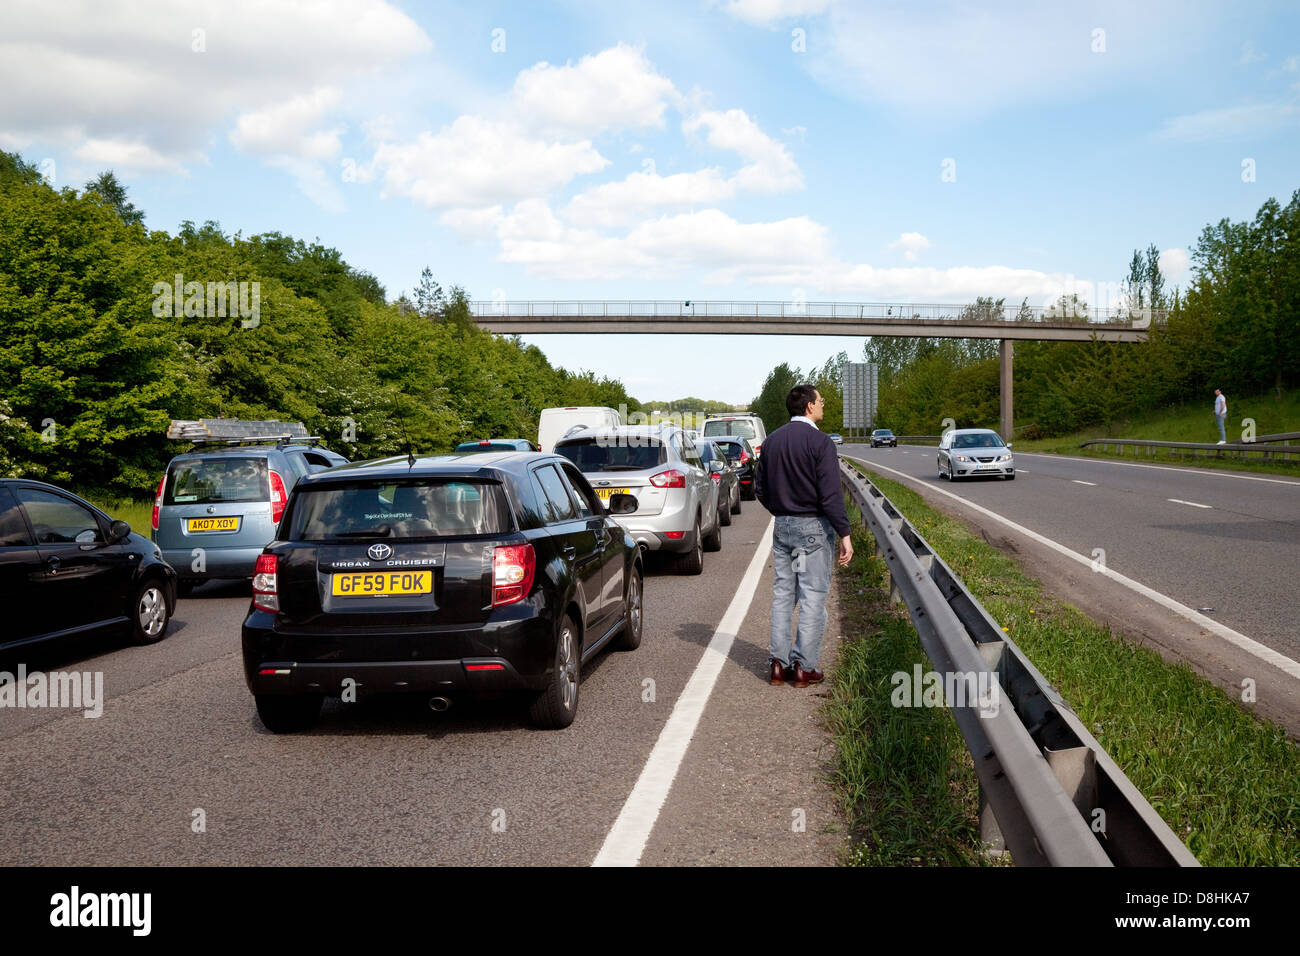 People on the road during a traffic jam due to an accident on the A20 dual carriageway road, Kent UK - Stock Image